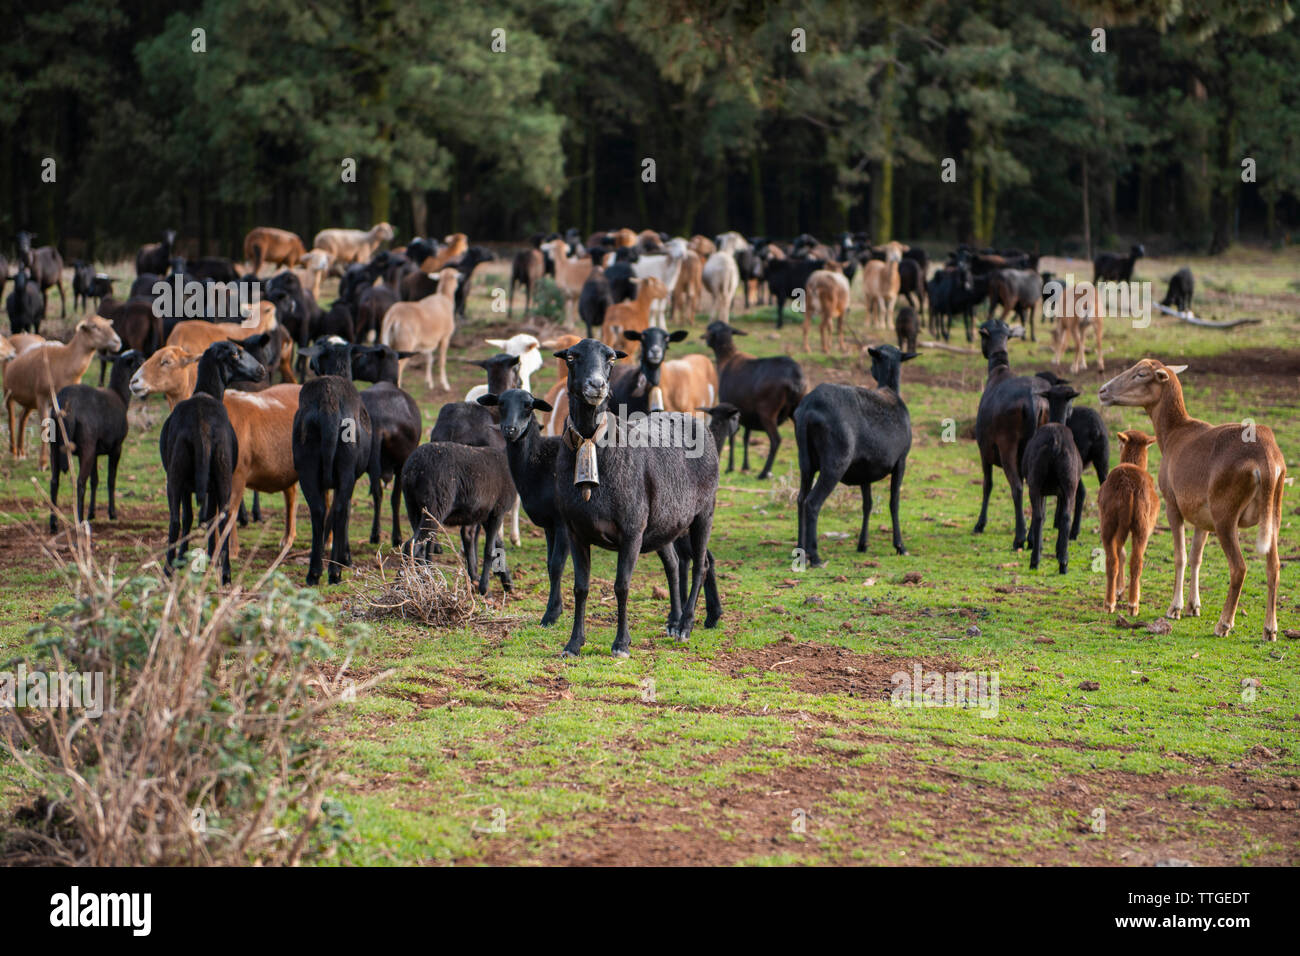 A herd of goats grazing on grassland against coniferous forest - Stock Image